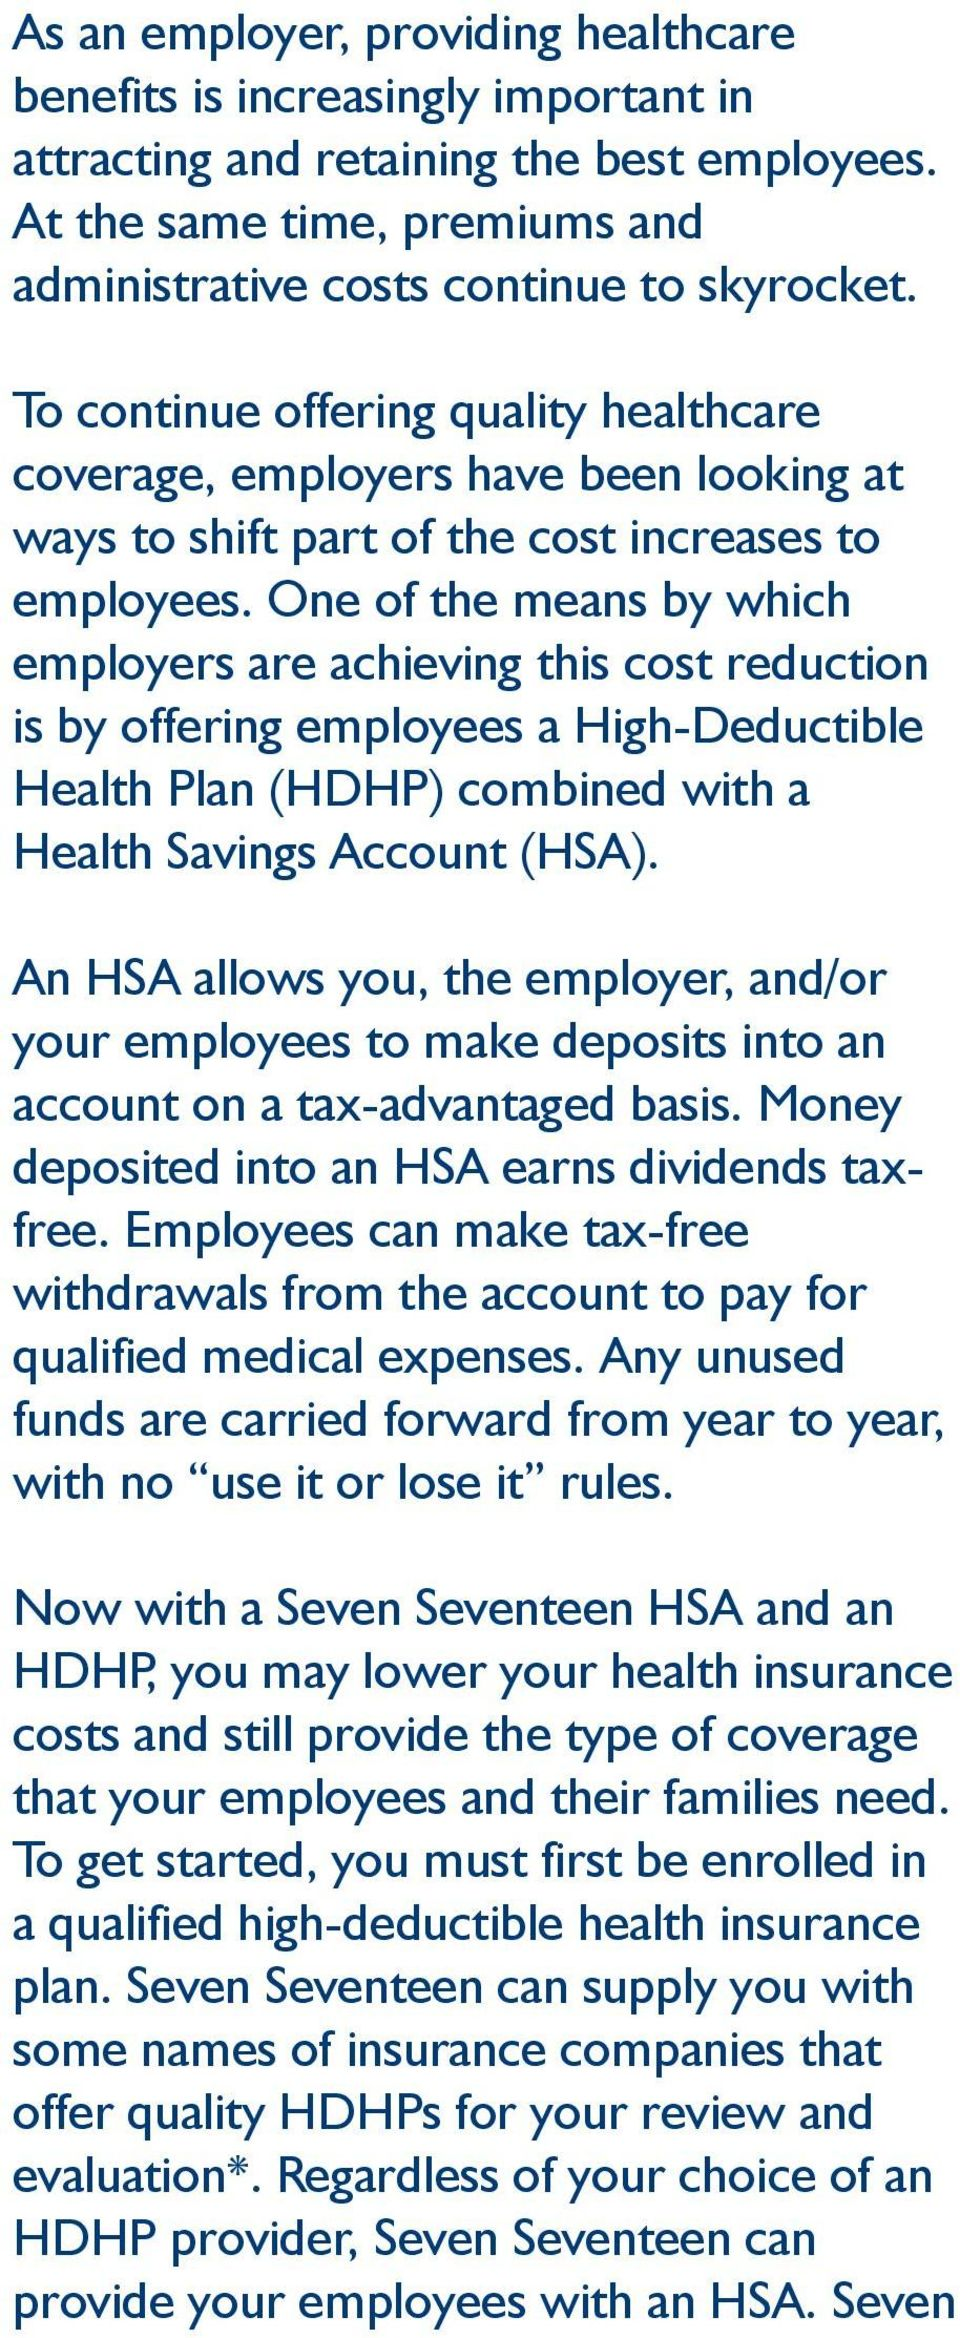 One of the means by which employers are achieving this cost reduction is by offering employees a High-Deductible Health Plan (HDHP) combined with a Health Savings Account (HSA).